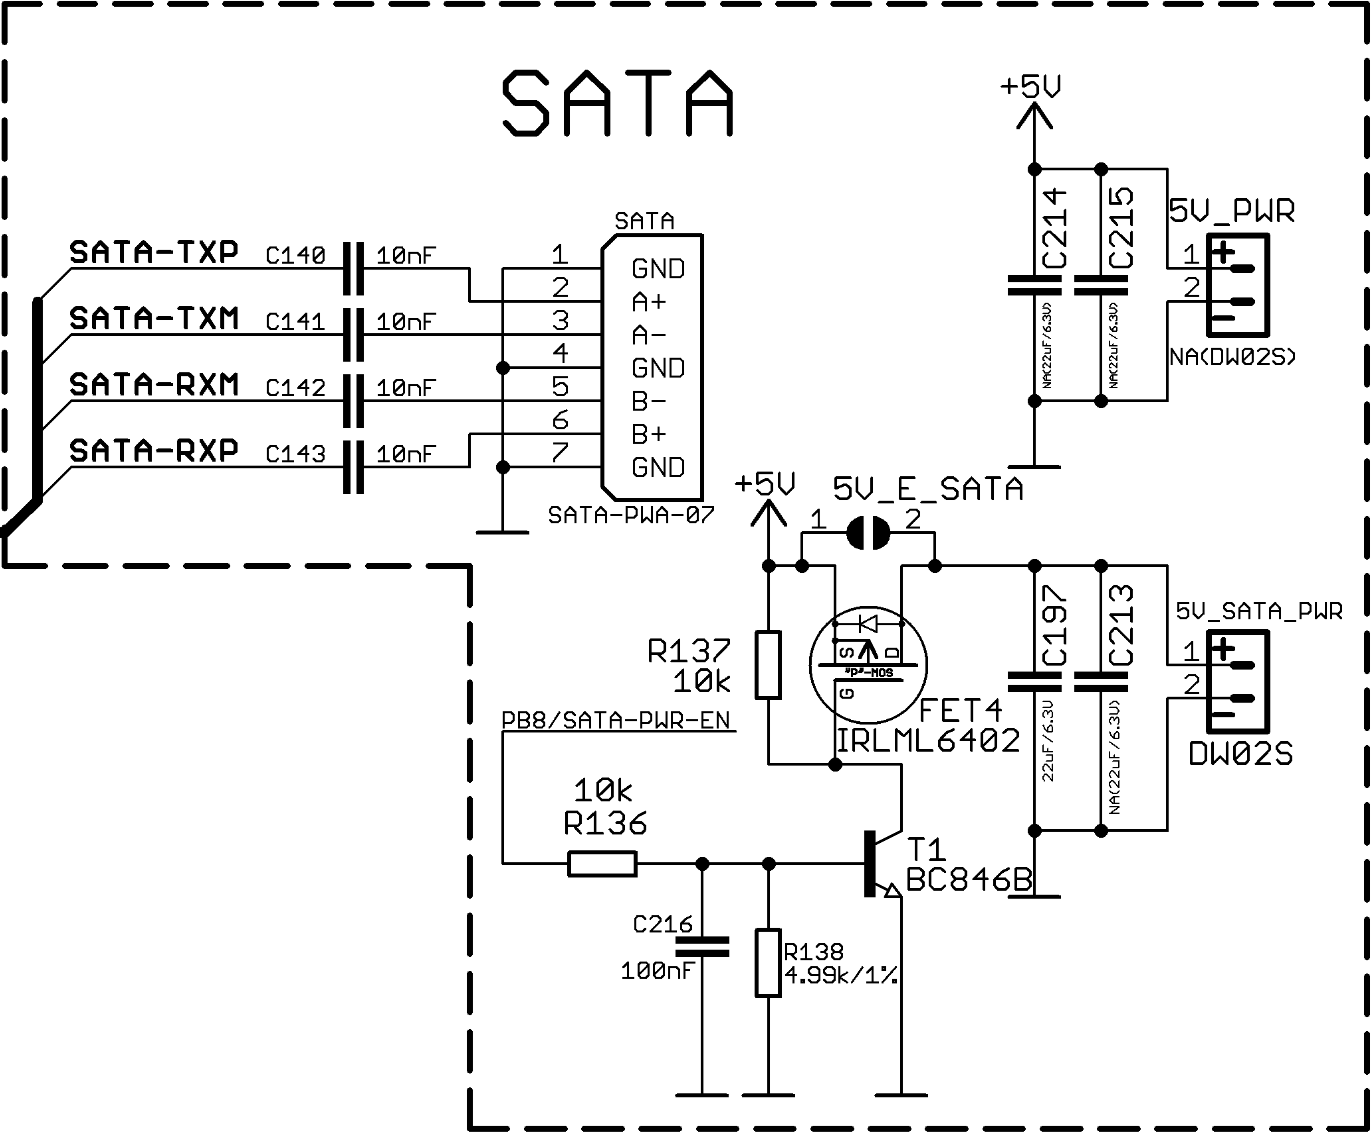 Sata Power Wiring Diagram Page 3 And Schematics Molex To Schematic Search For Diagrams U2022 Rh Stephenpoon Co